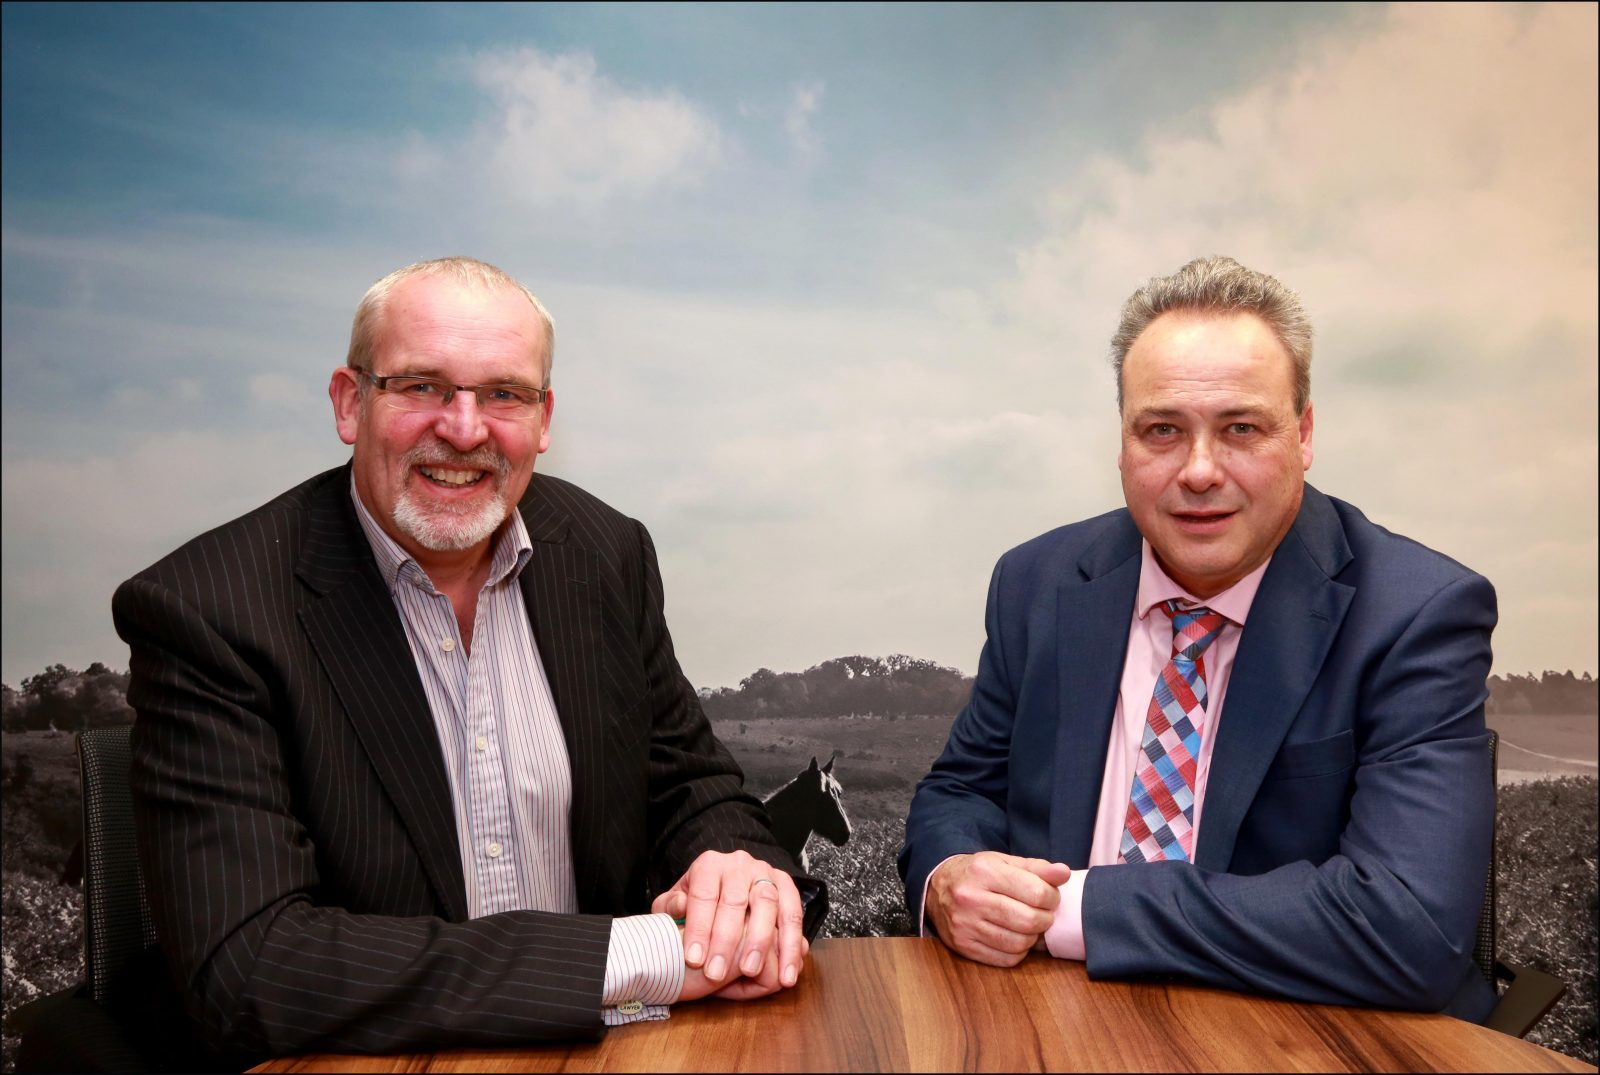 Taxing appointment: Trust and tax specialist Andy Kirby (right) with Nigel Smith, Managing Partner, Ellis Jones Solicitors.